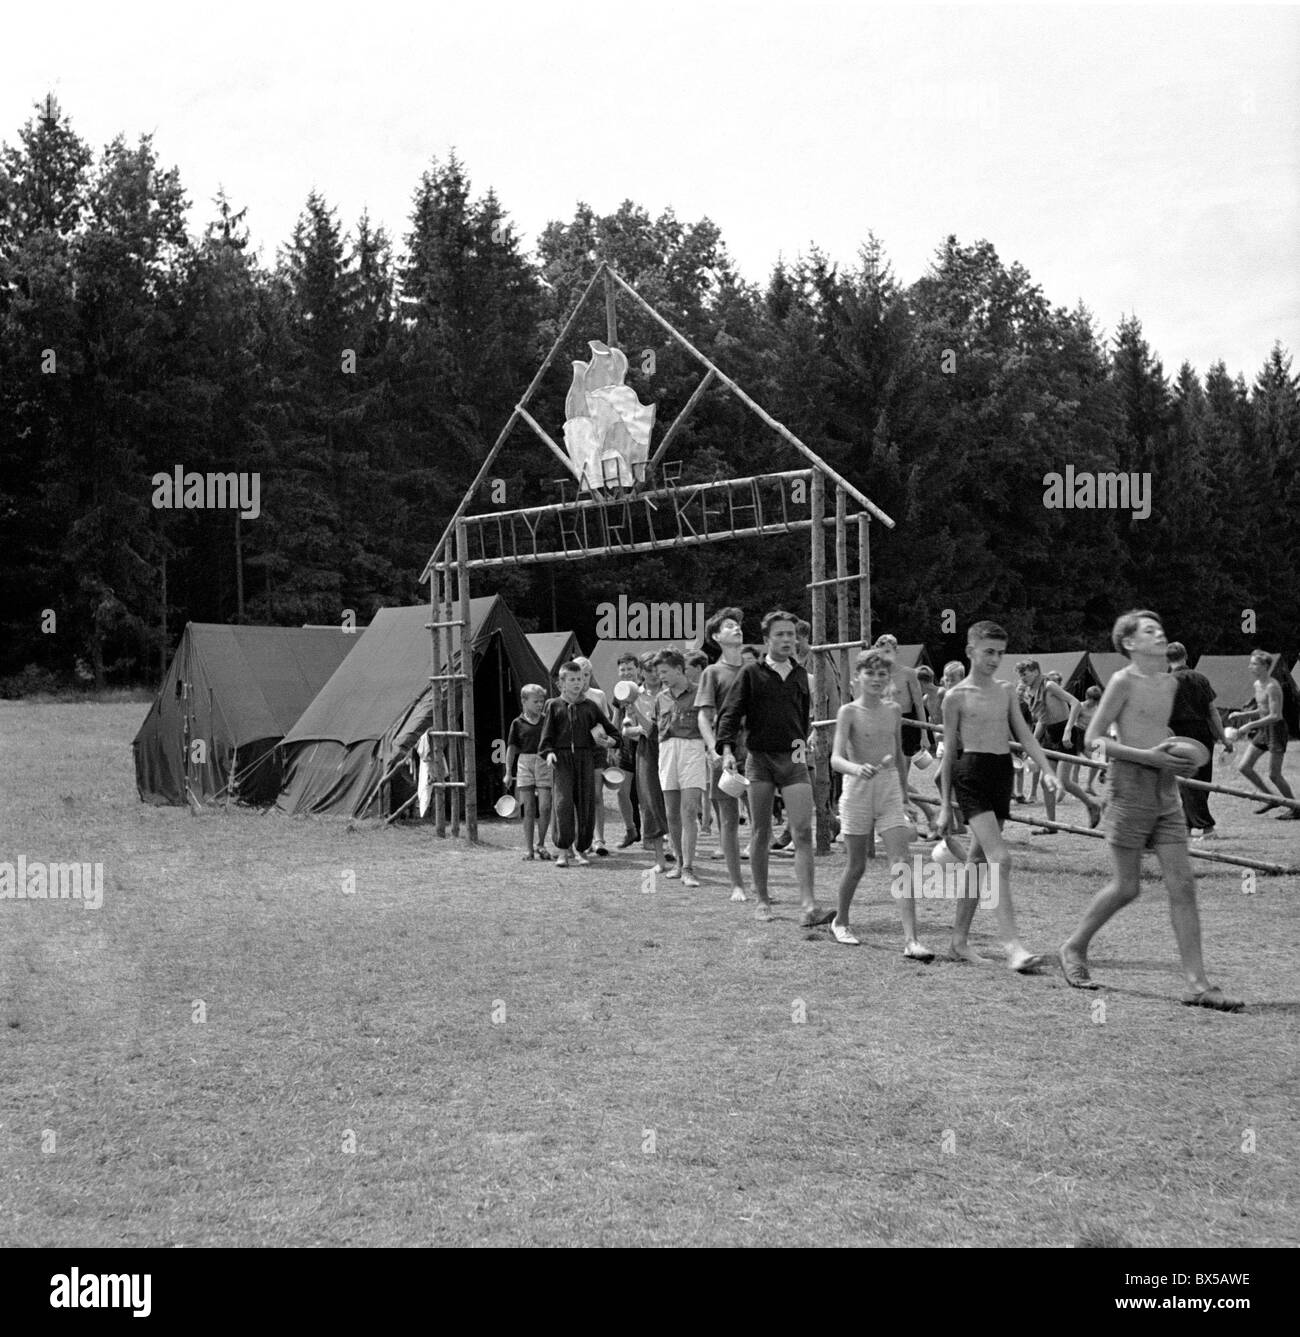 Pioneer camp, young Communists - Stock Image